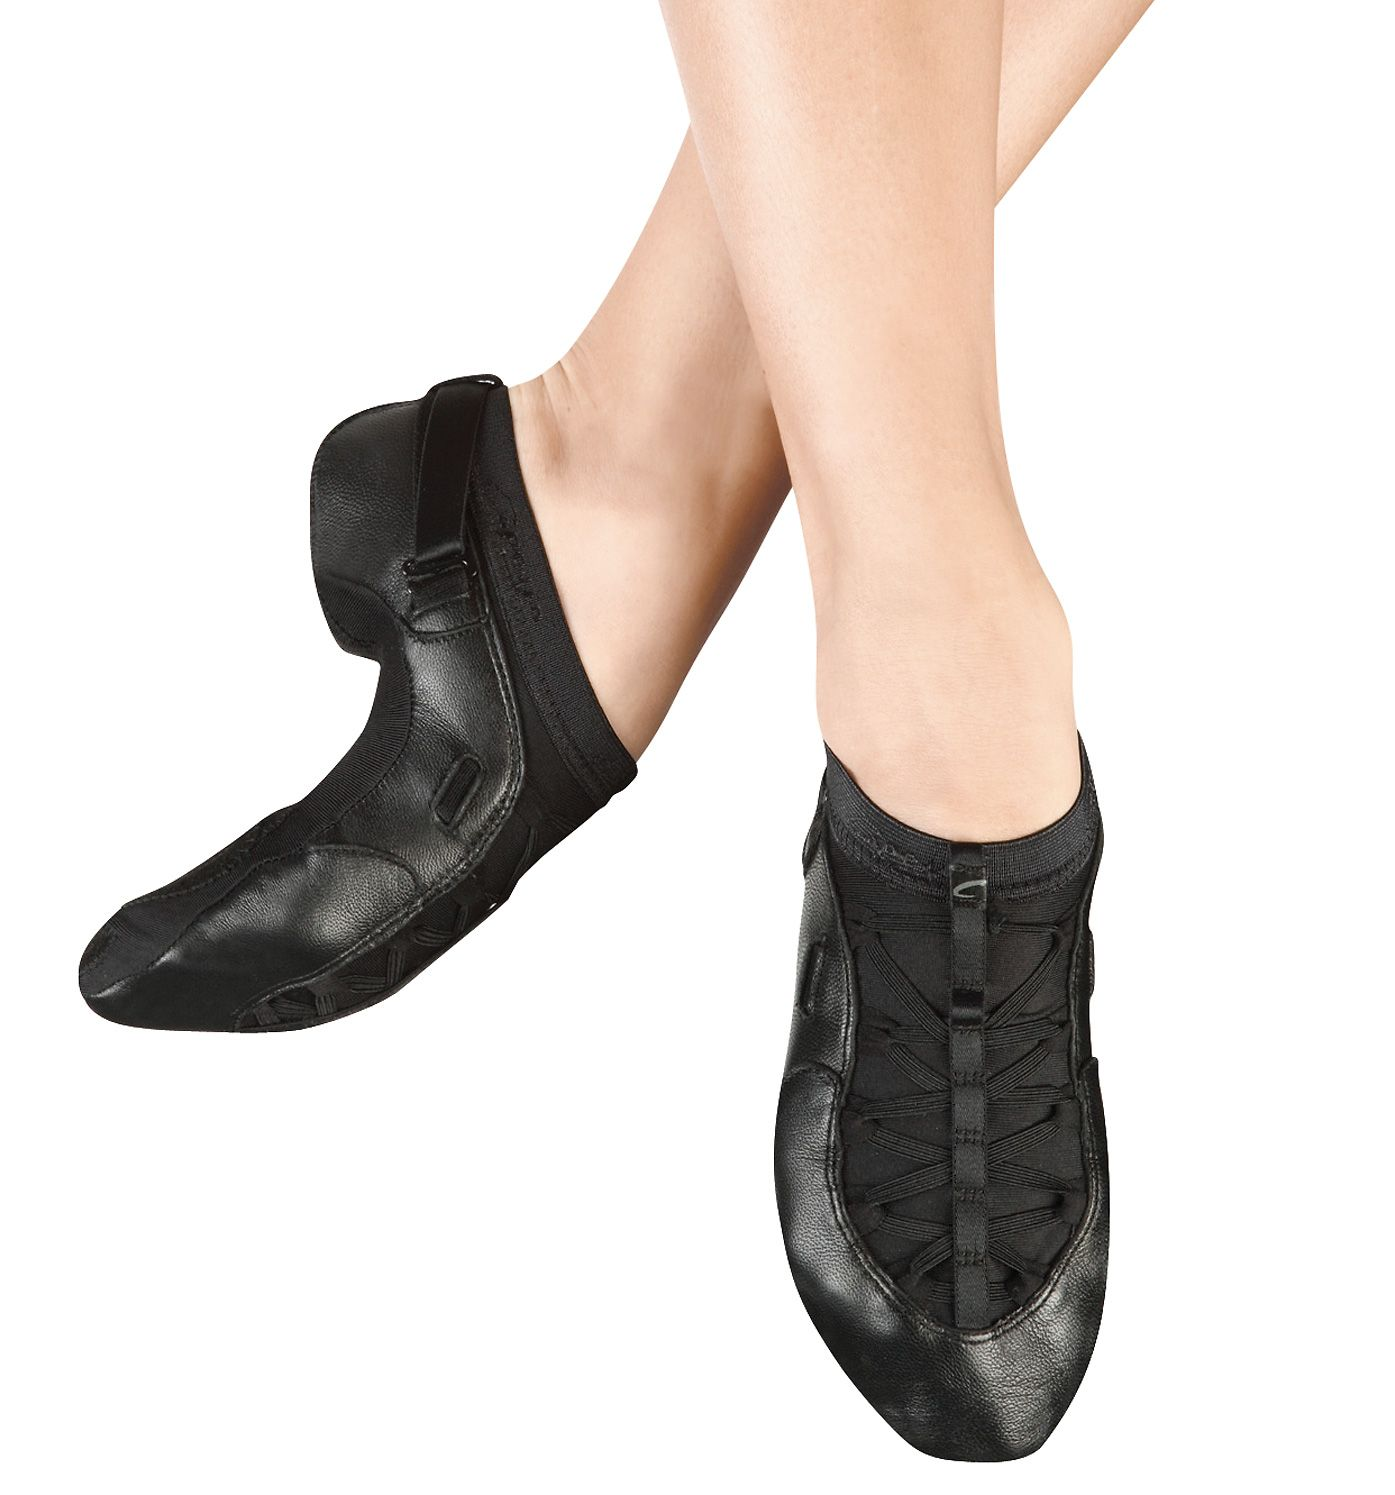 Adult slip on jazz boot